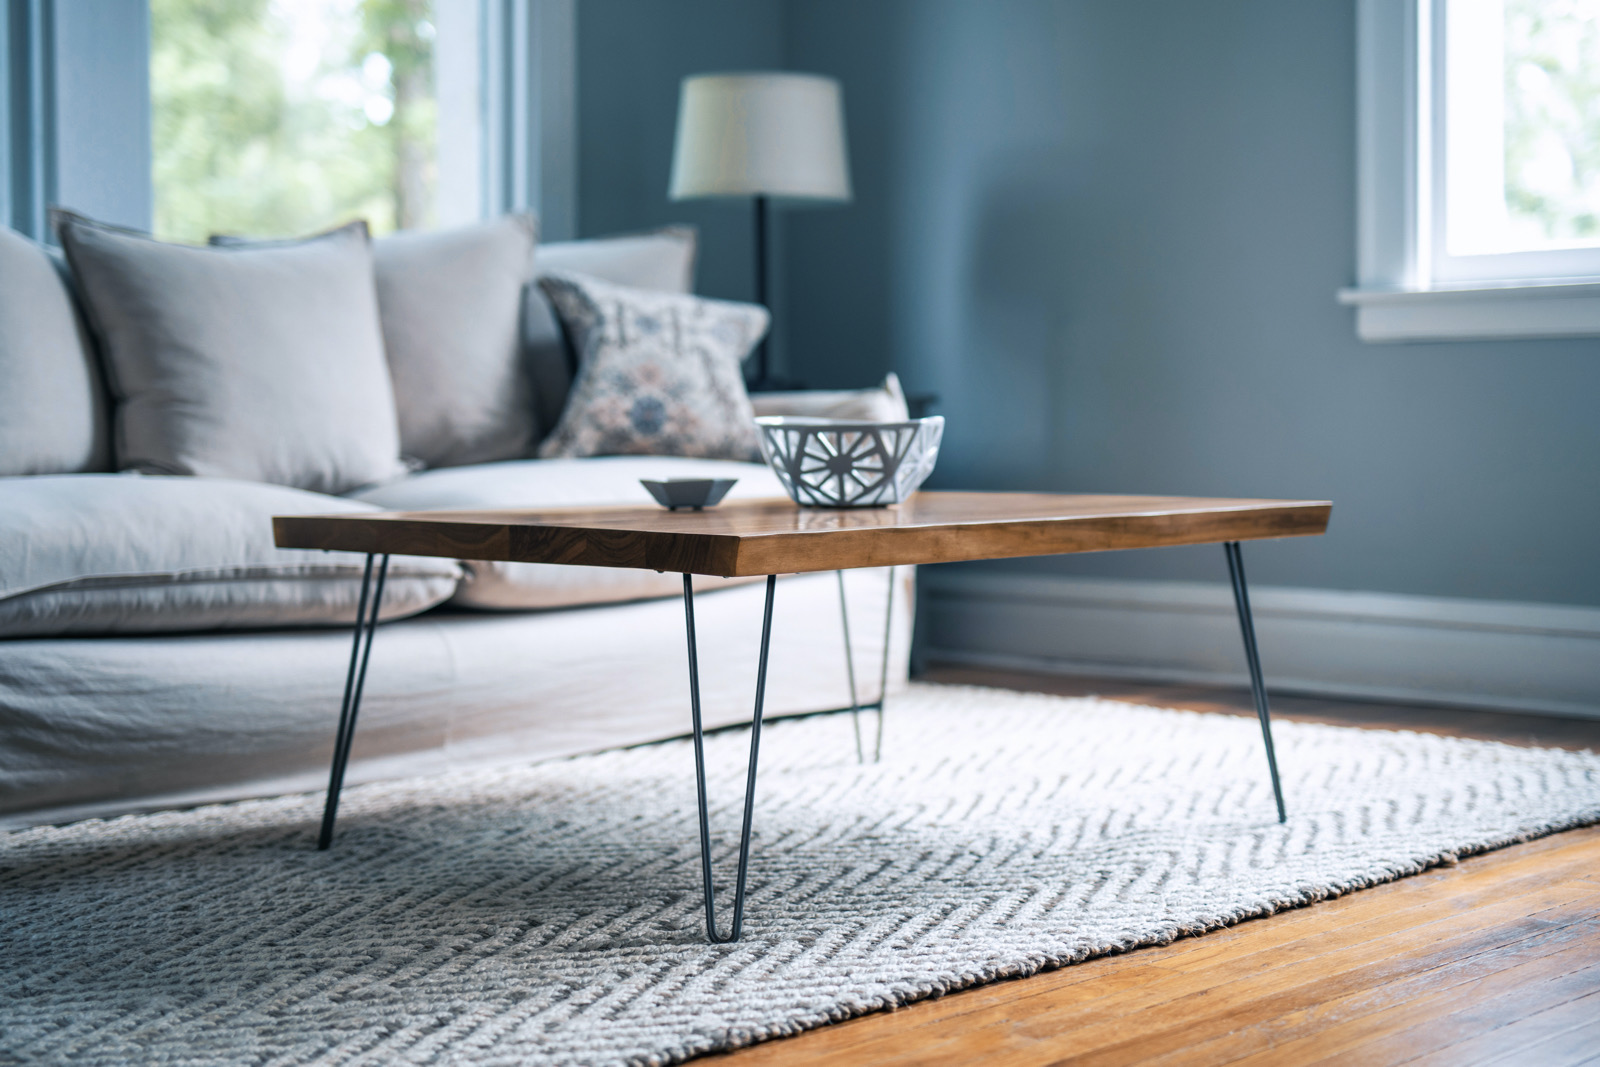 Wood Furniture: The Dearborn Coffee Table